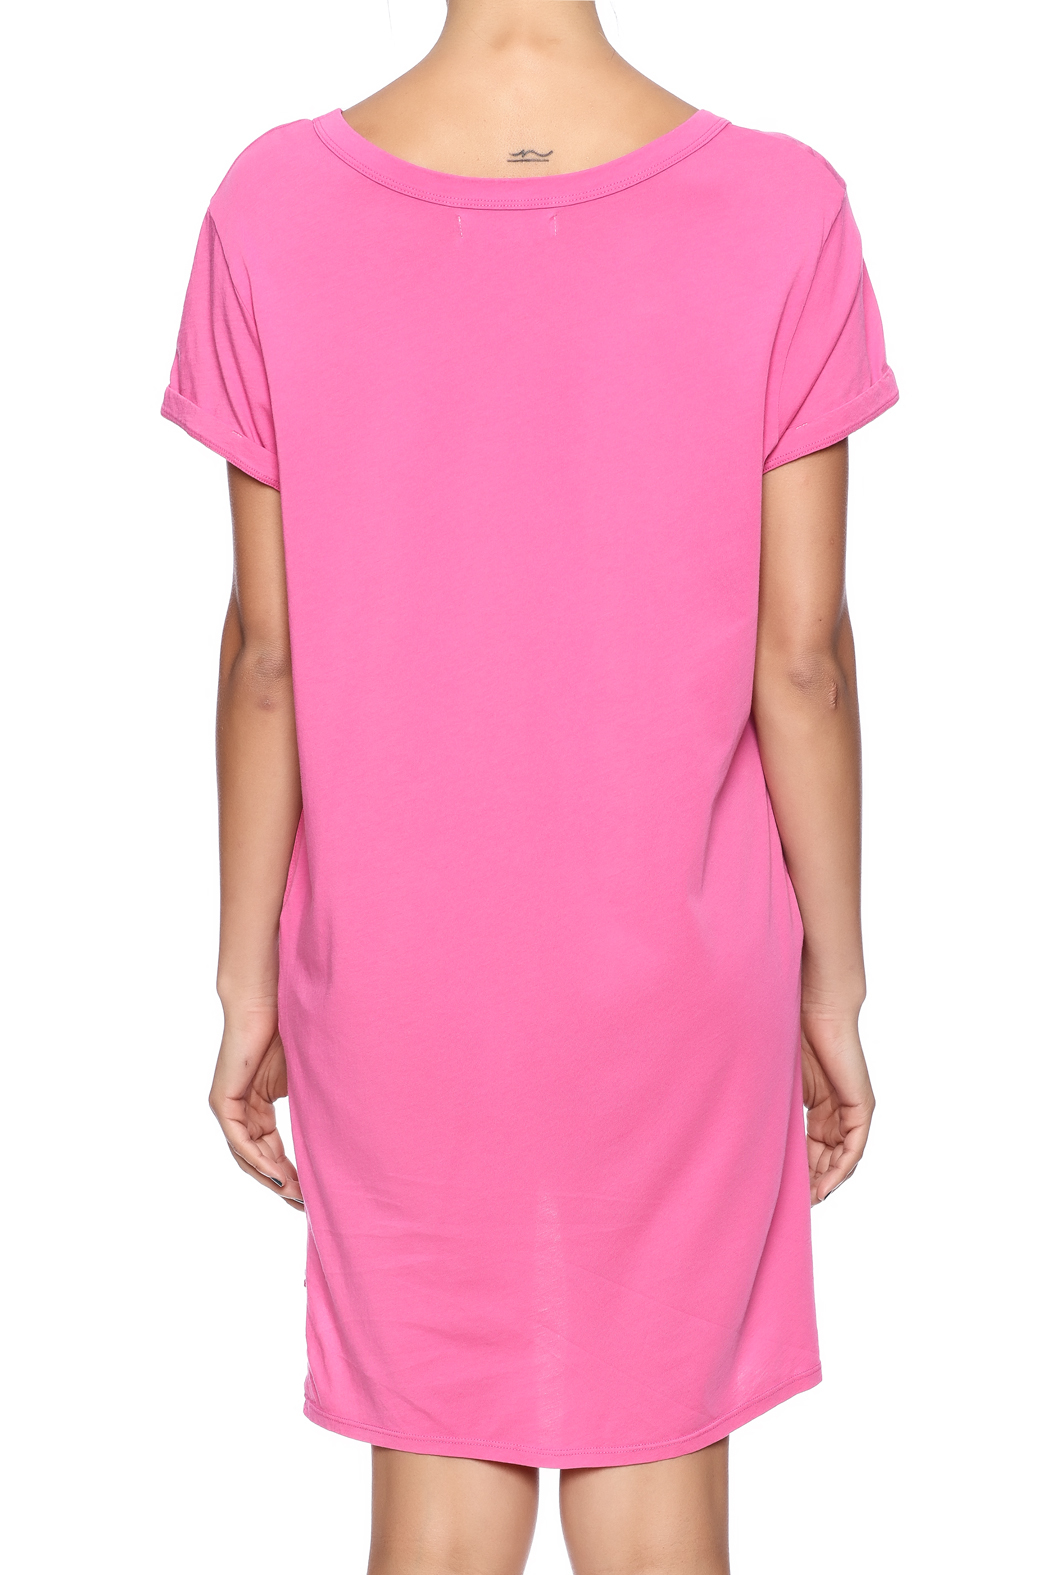 Groceries Apparel Sally Tee Dress - Back Cropped Image